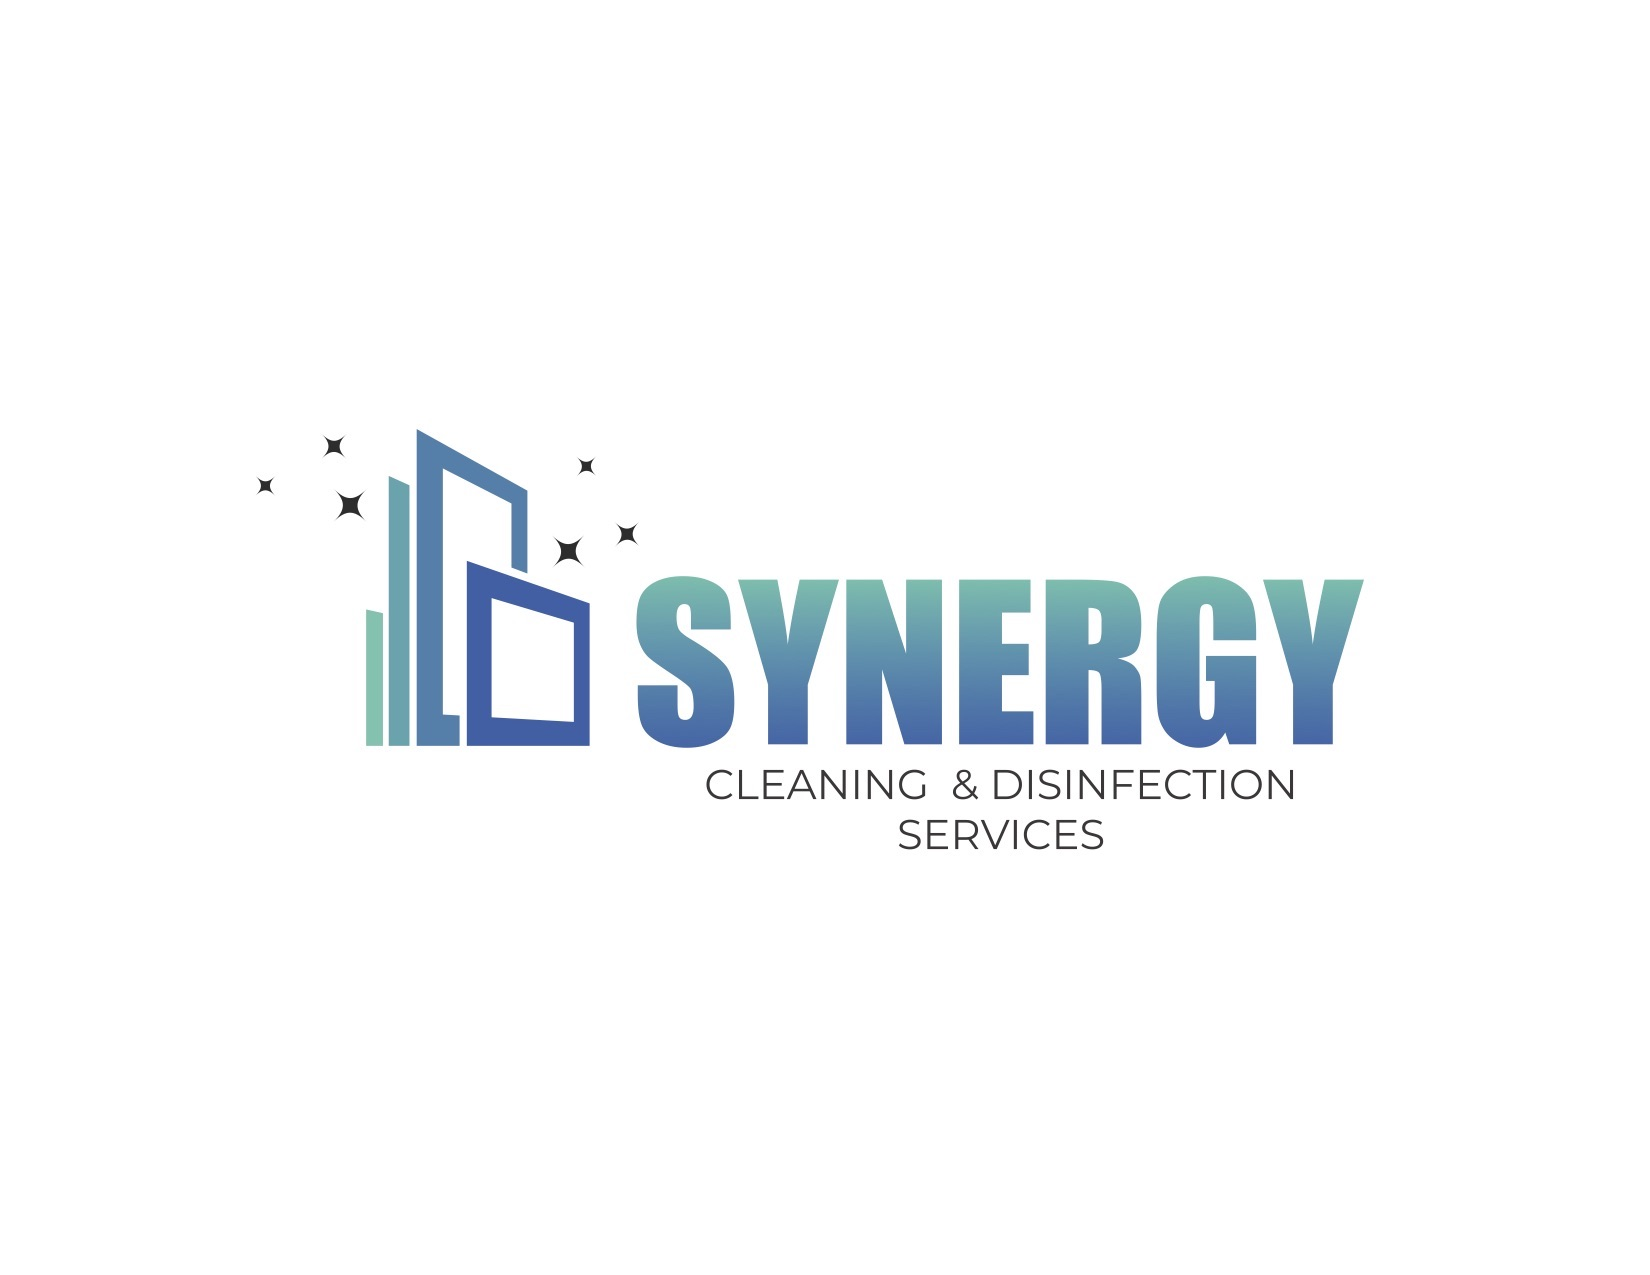 Synergy Cleaning and Disinfection Services